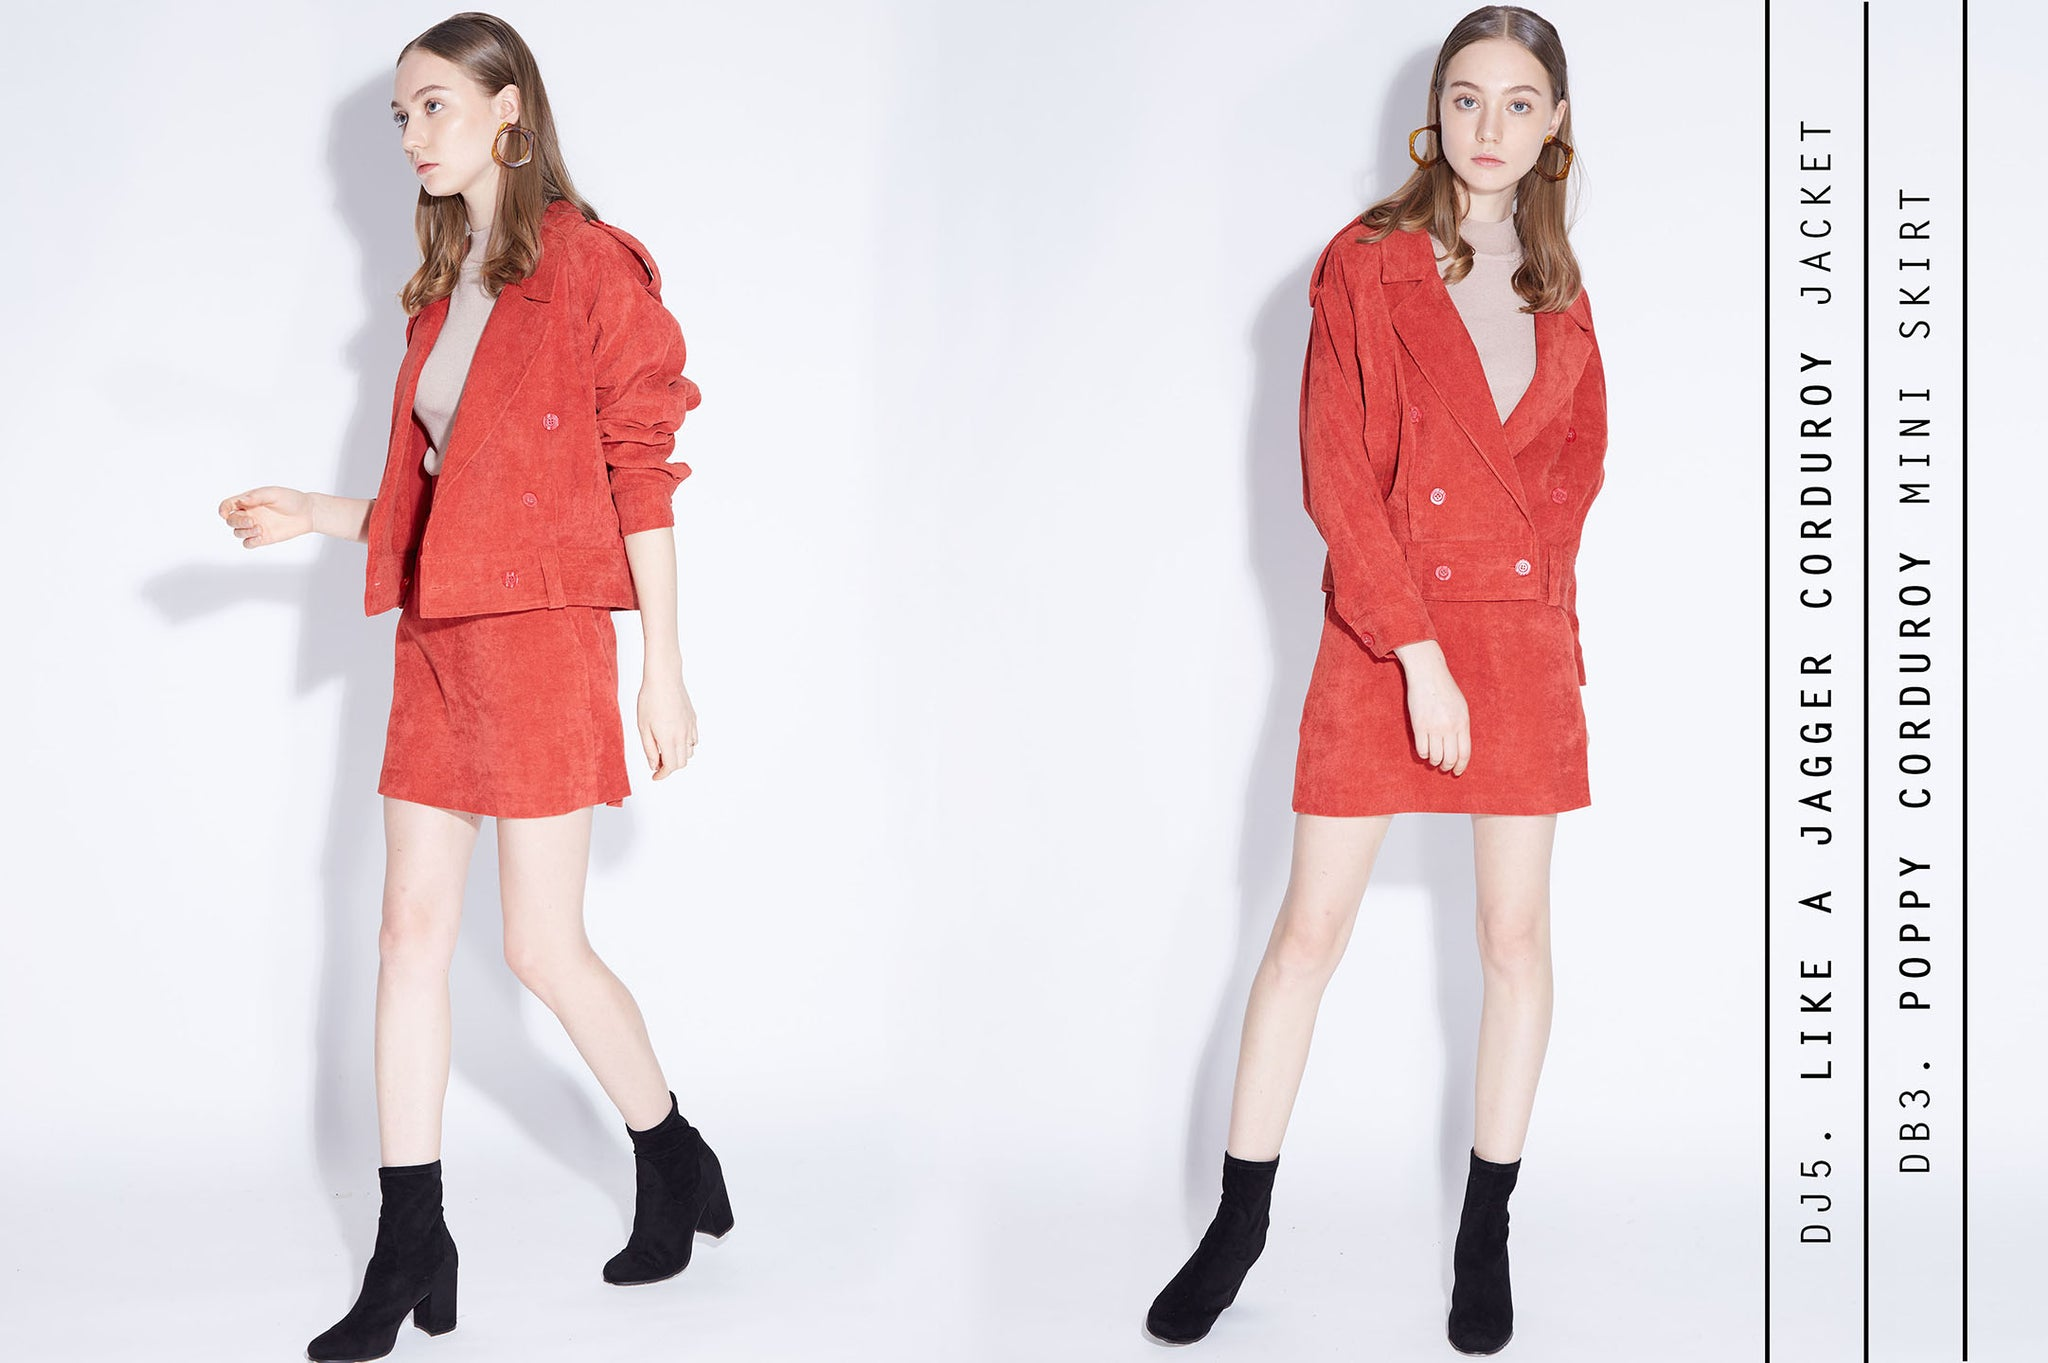 LIKE A JAGGER Jacket + POPPY LOVE mini skirt in bright red corduroy